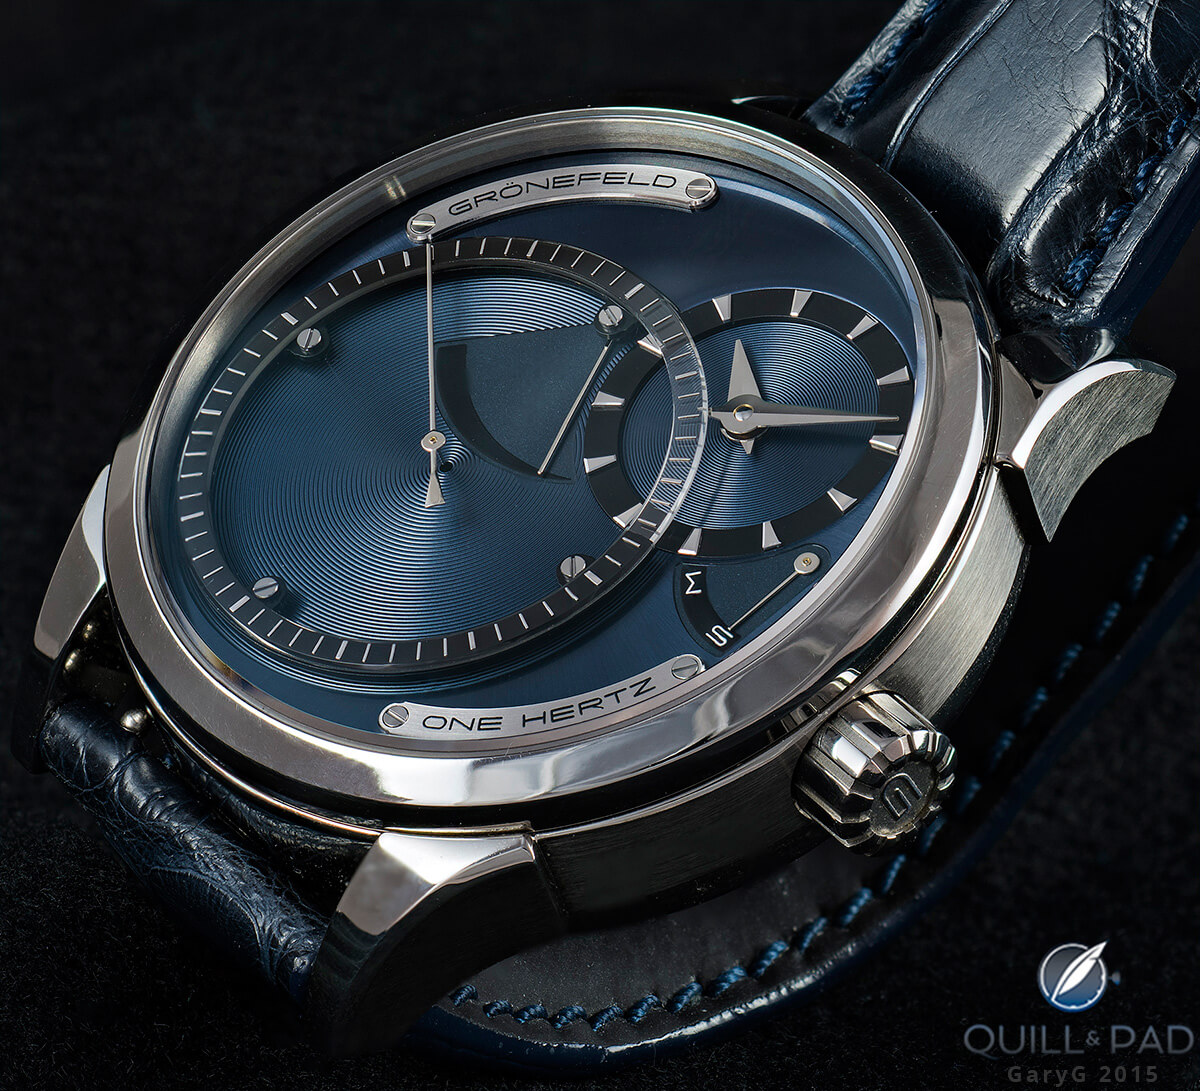 Grönefeld One Hertz – A Collector's Journey | Quill & Pad